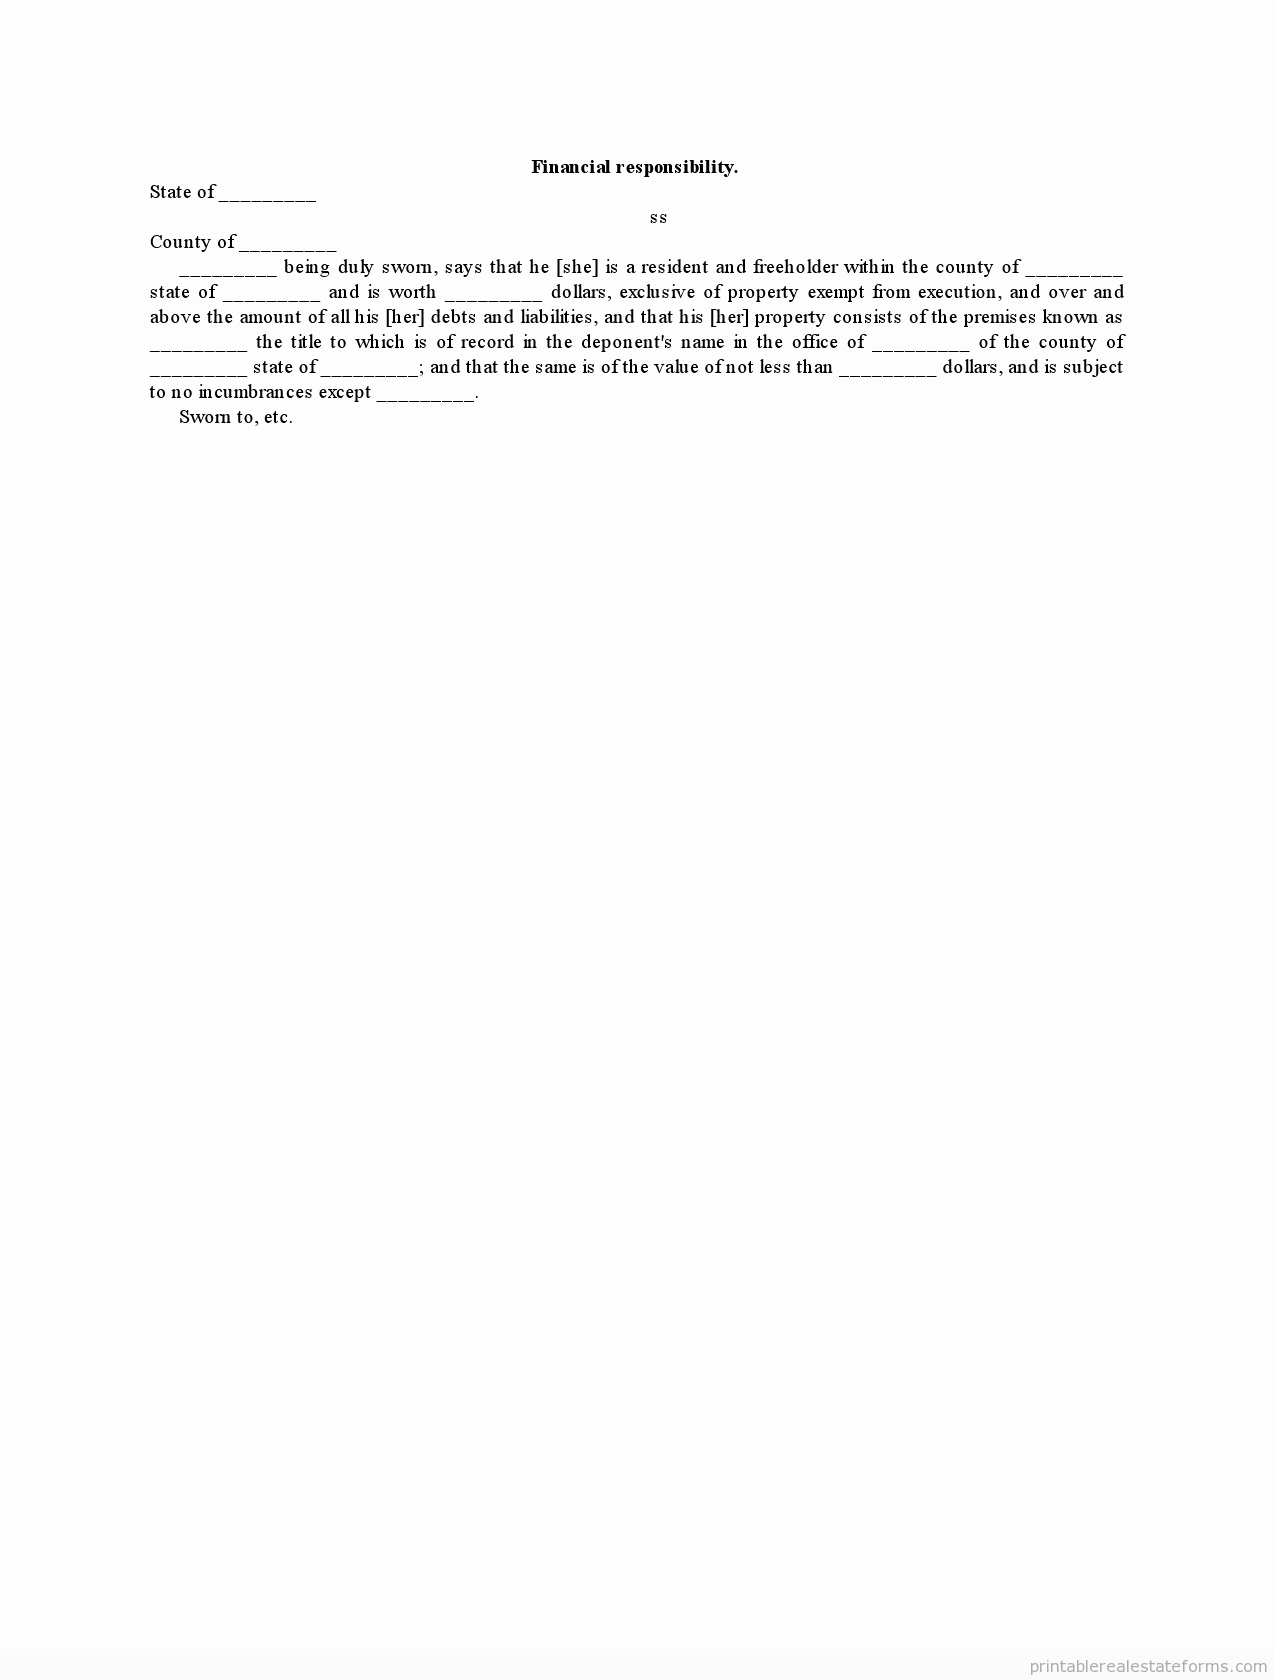 Letter Of Financial Responsibility Template Beautiful Sample Printable Financial Responsibility form